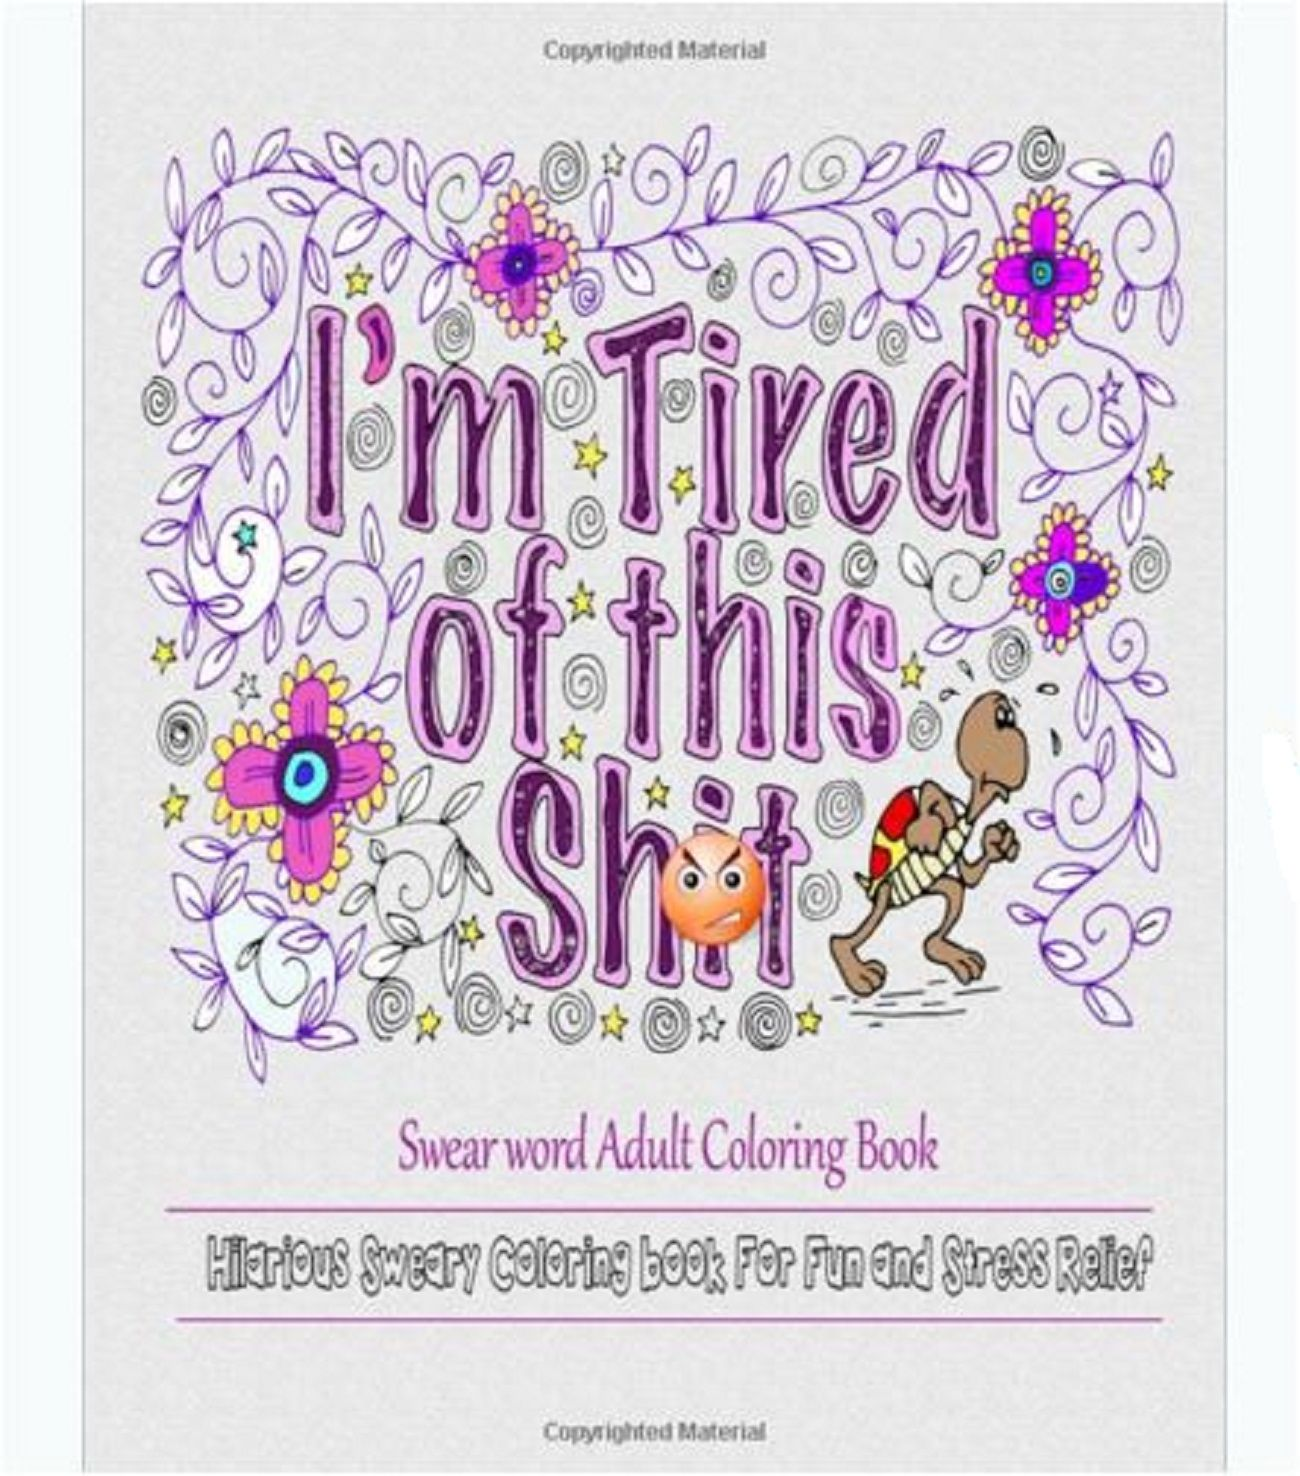 Colouring in book swear words - Adult Coloring Book Swear Words Design Fun Stress Relief Gift Sweary Patterns